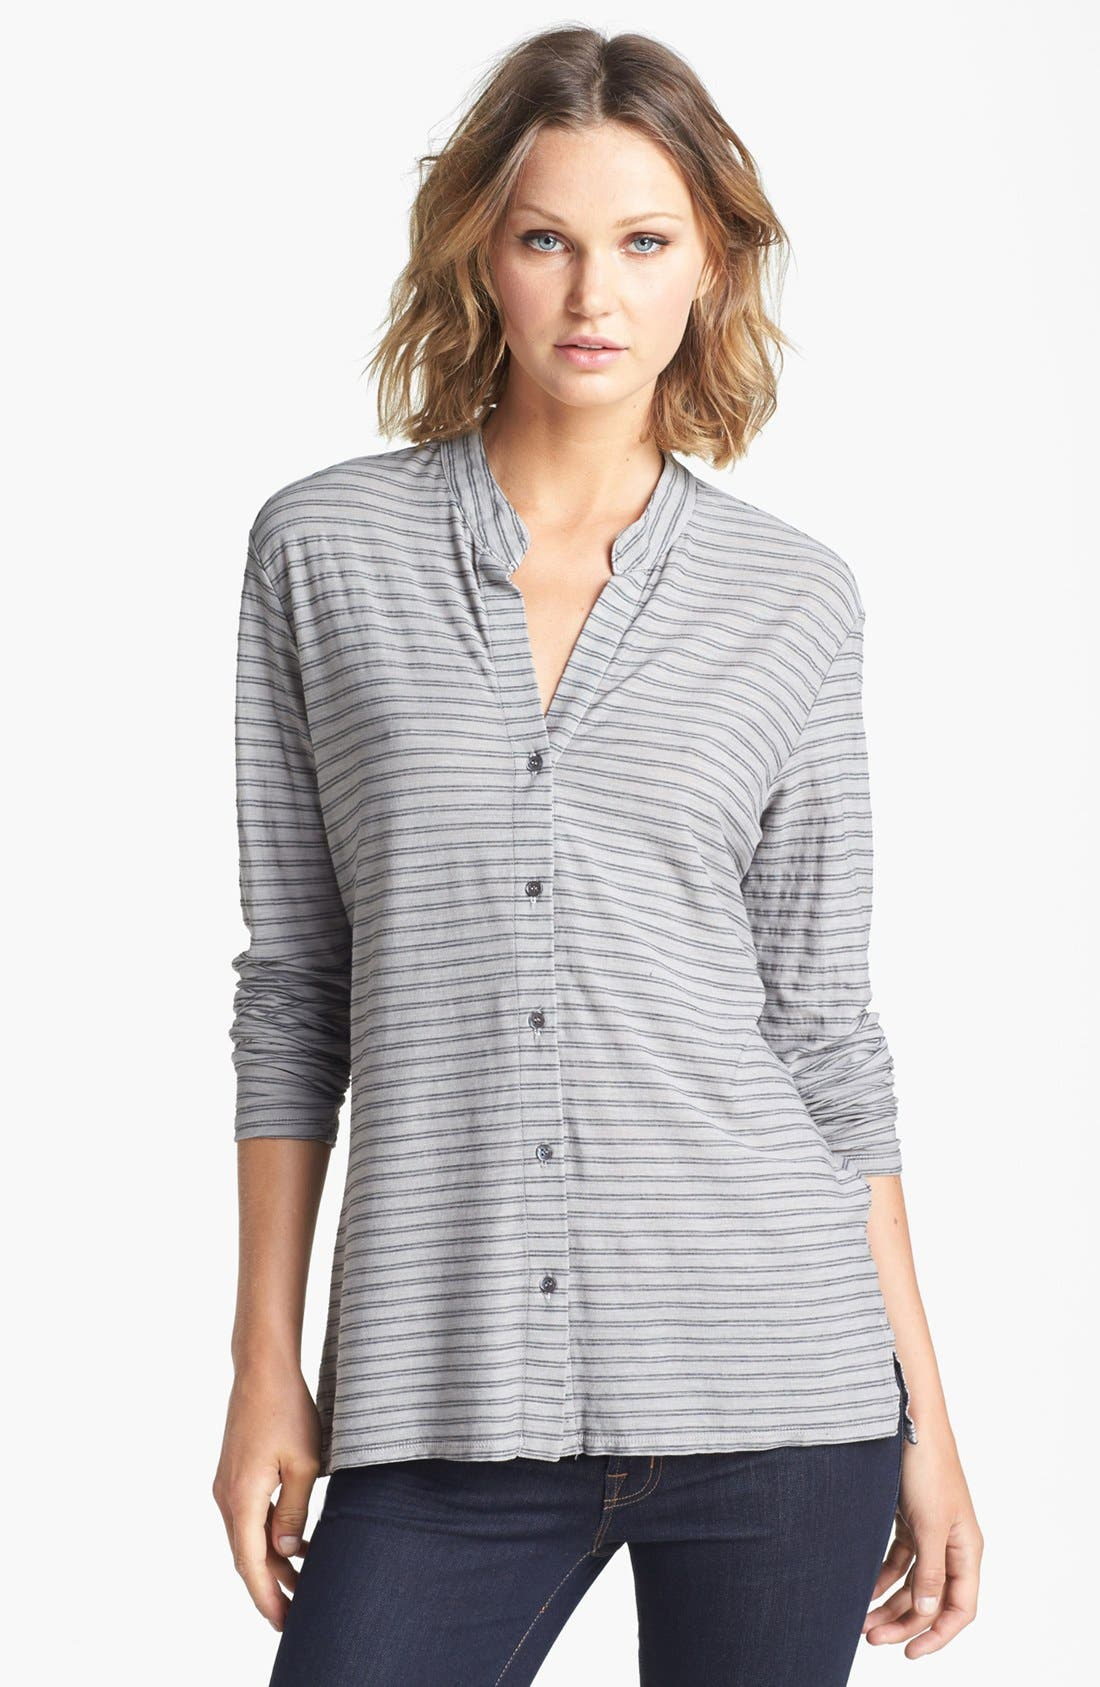 Main Image - James Perse Stripe Slub Jersey Button Up